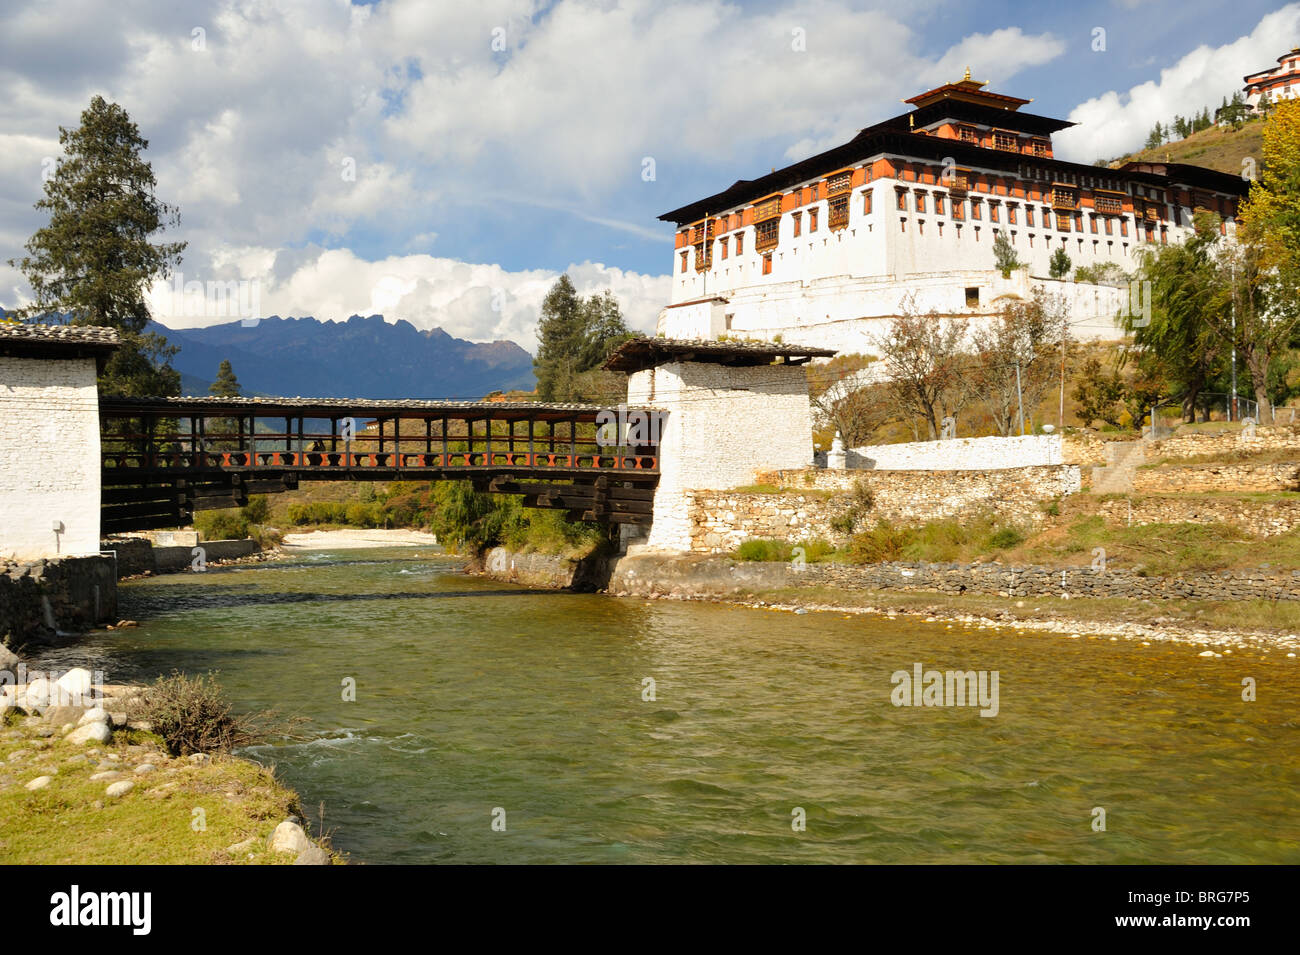 Paro Dzong and bridge, Bhutan - Stock Image